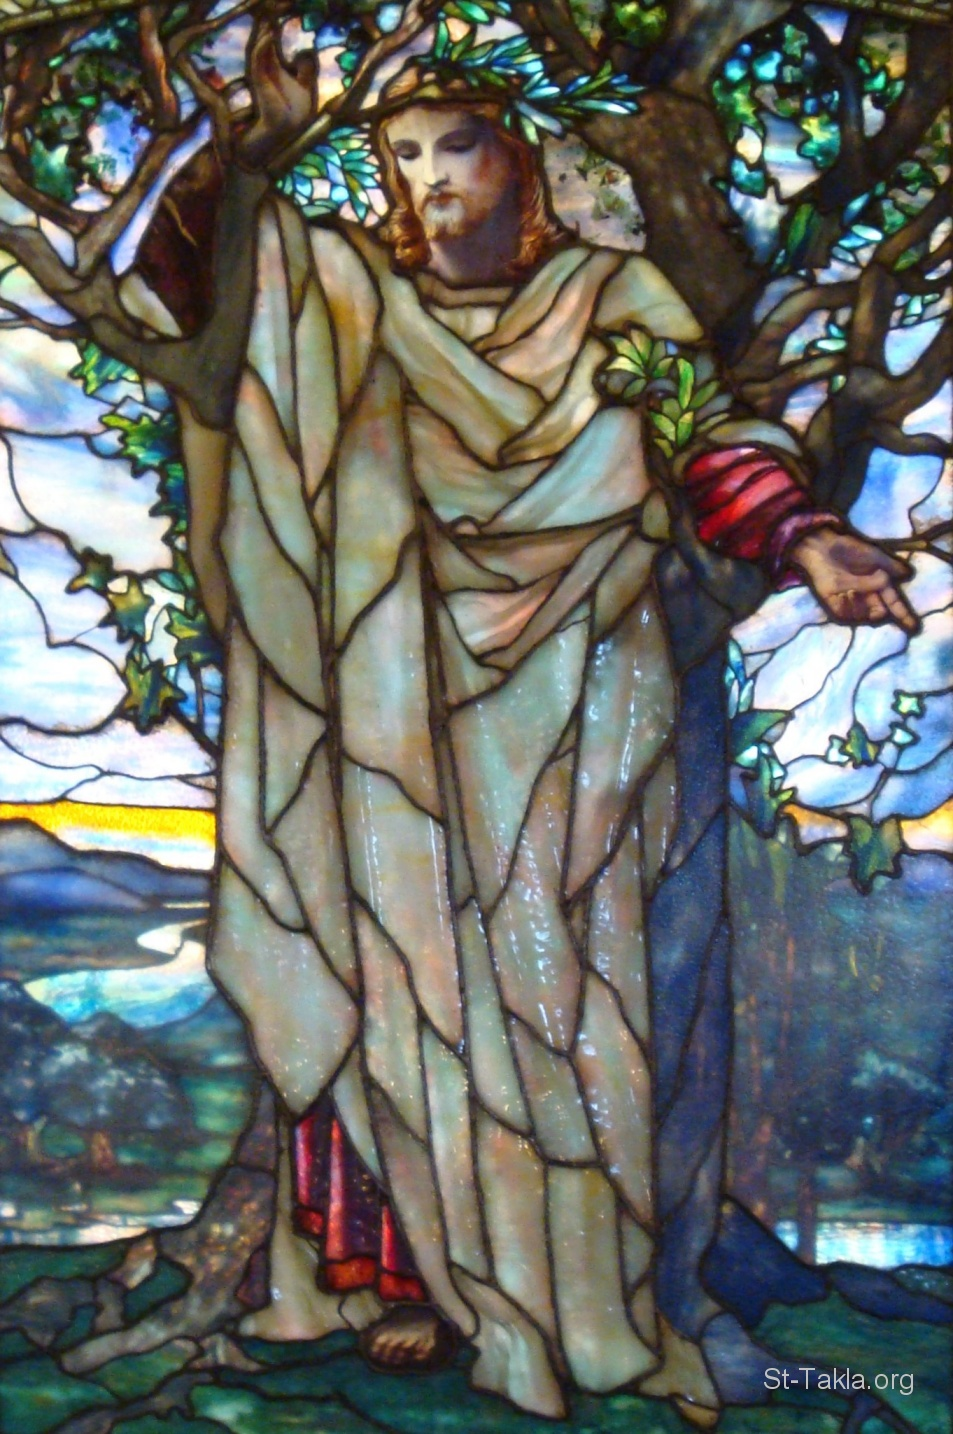 St-Takla.org Image: Detail of stained glass window created by Louis Comfort Tiffany in Arlington Street